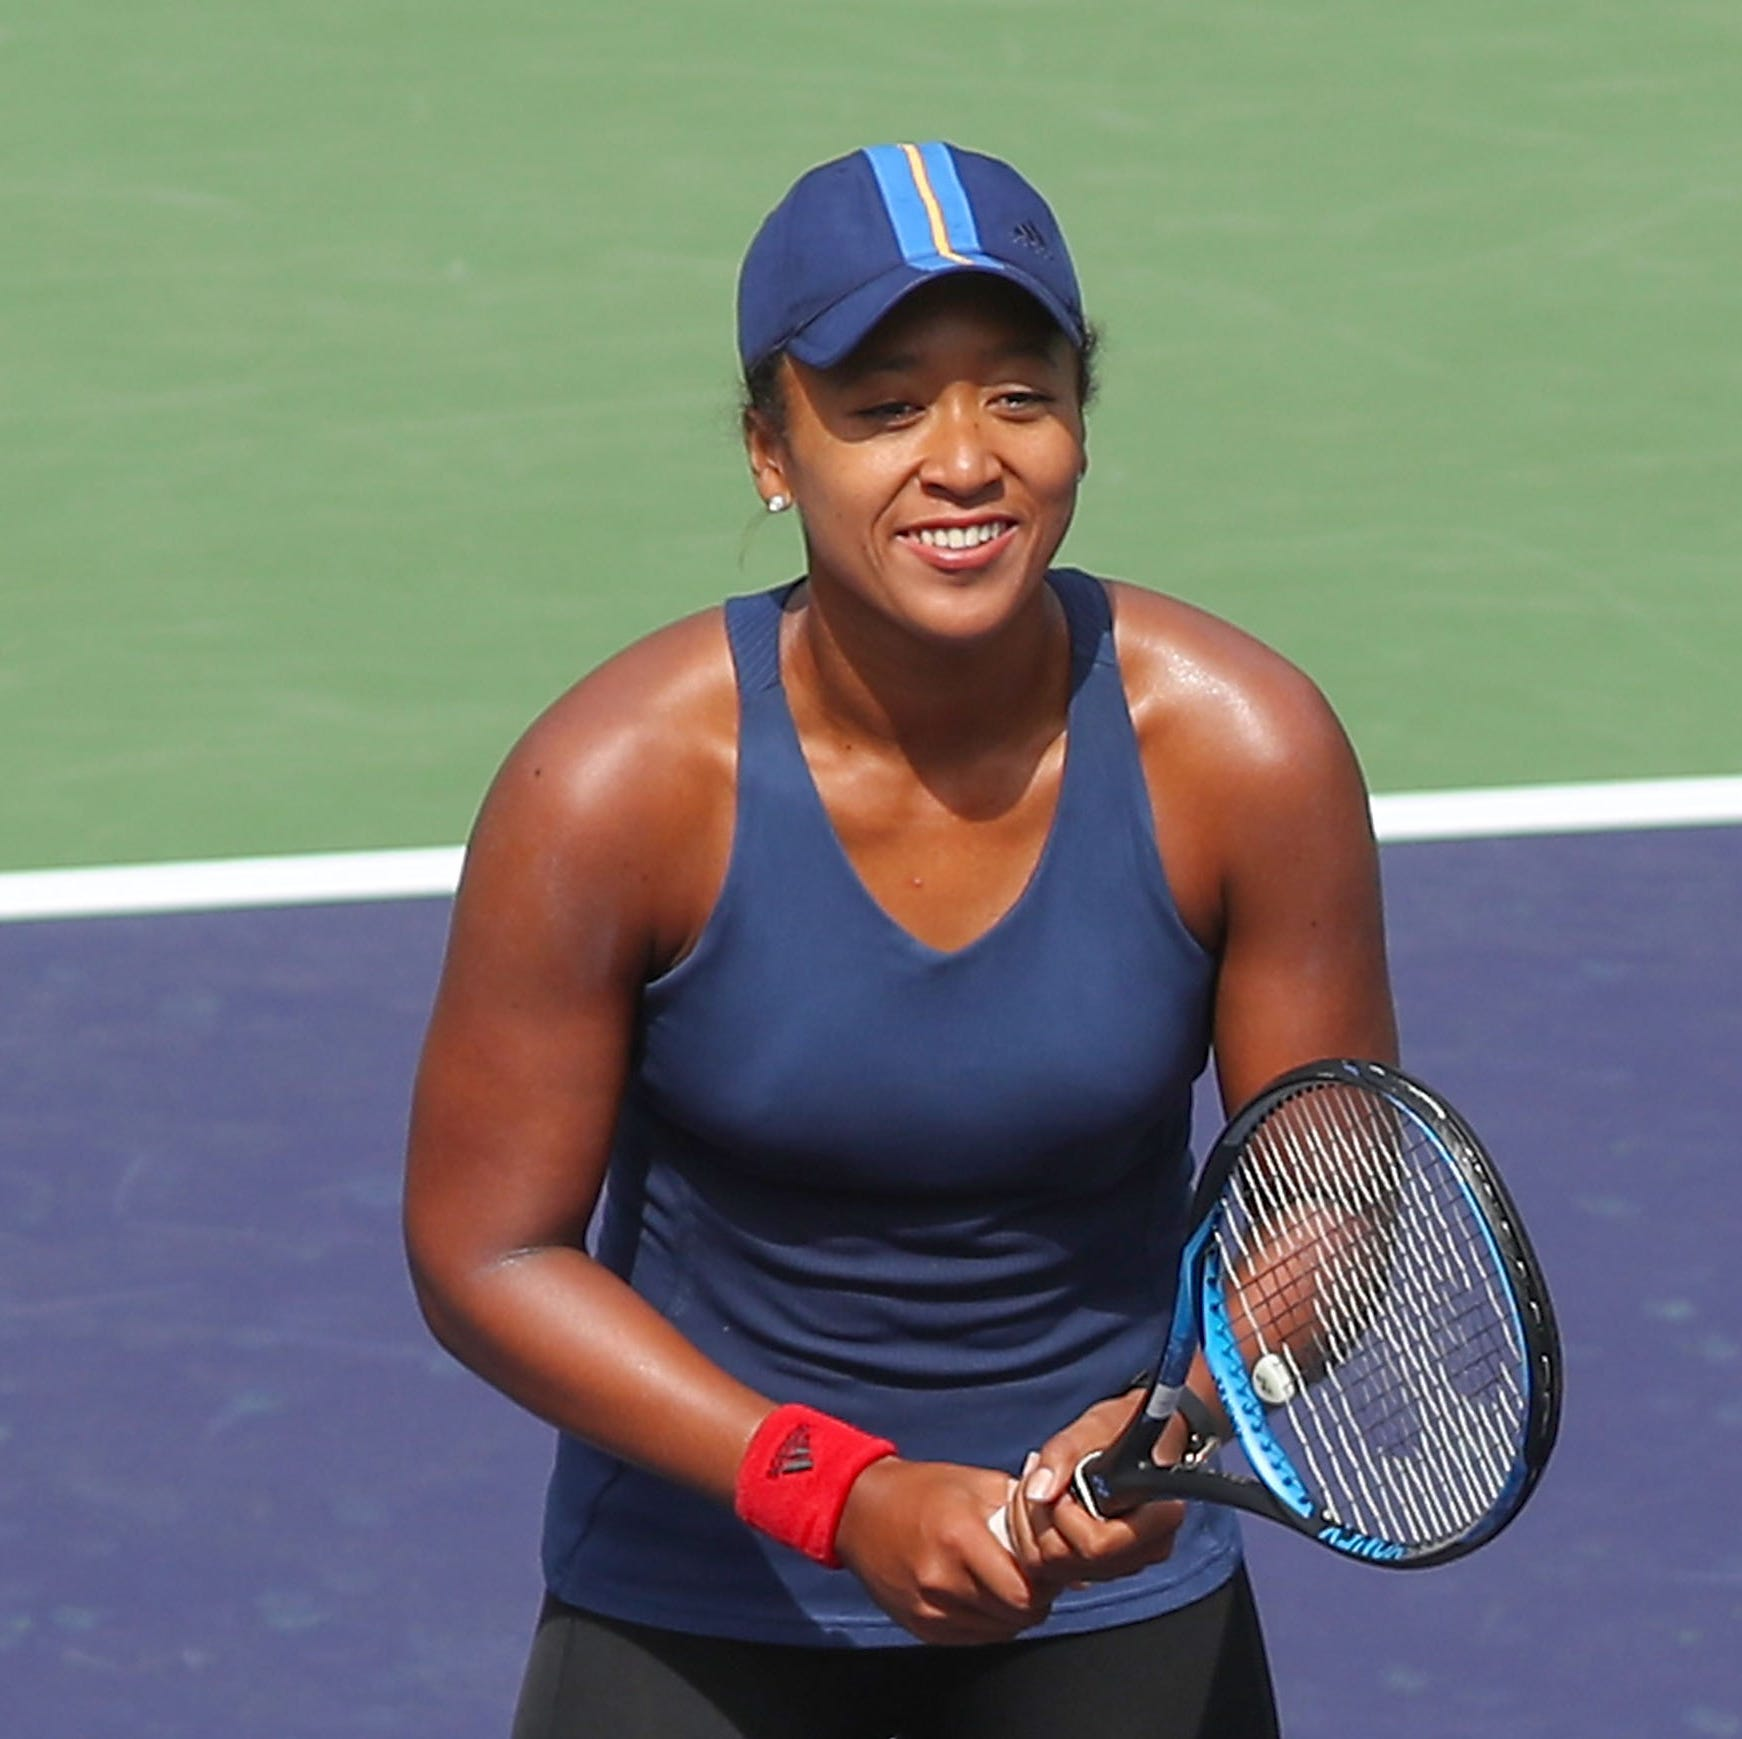 'It's been a really crazy ride': Naomi Osaka is back at Indian Wells, where her rise began